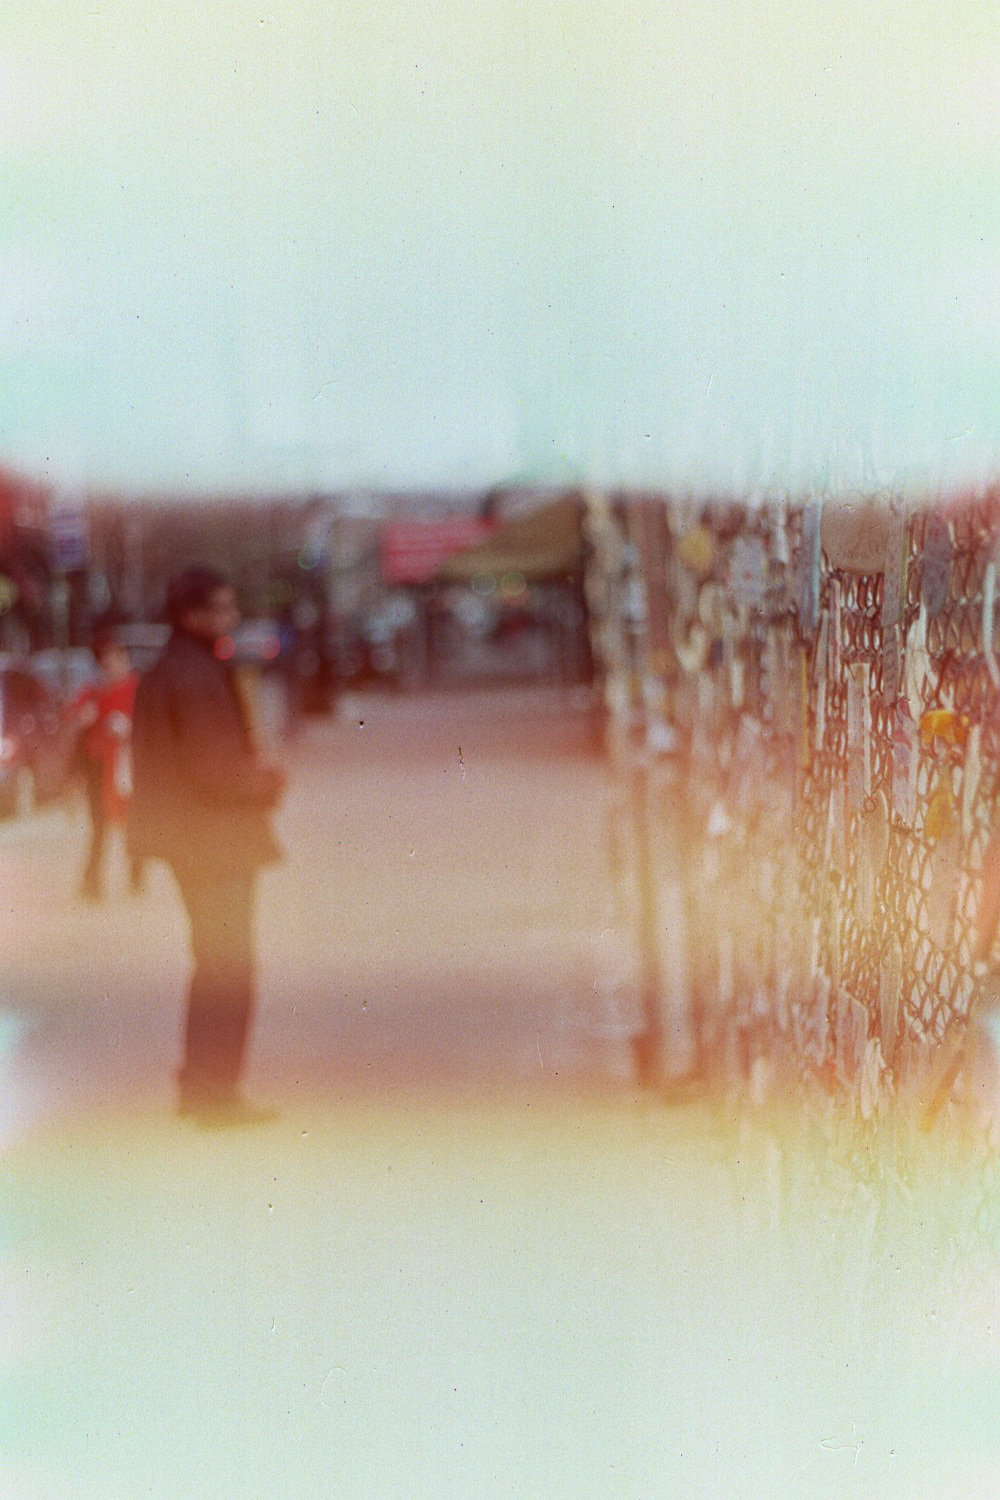 Three examples of light leaks affecting photos from a 35mm film camera - an aesthetic Instagram emulates through filters